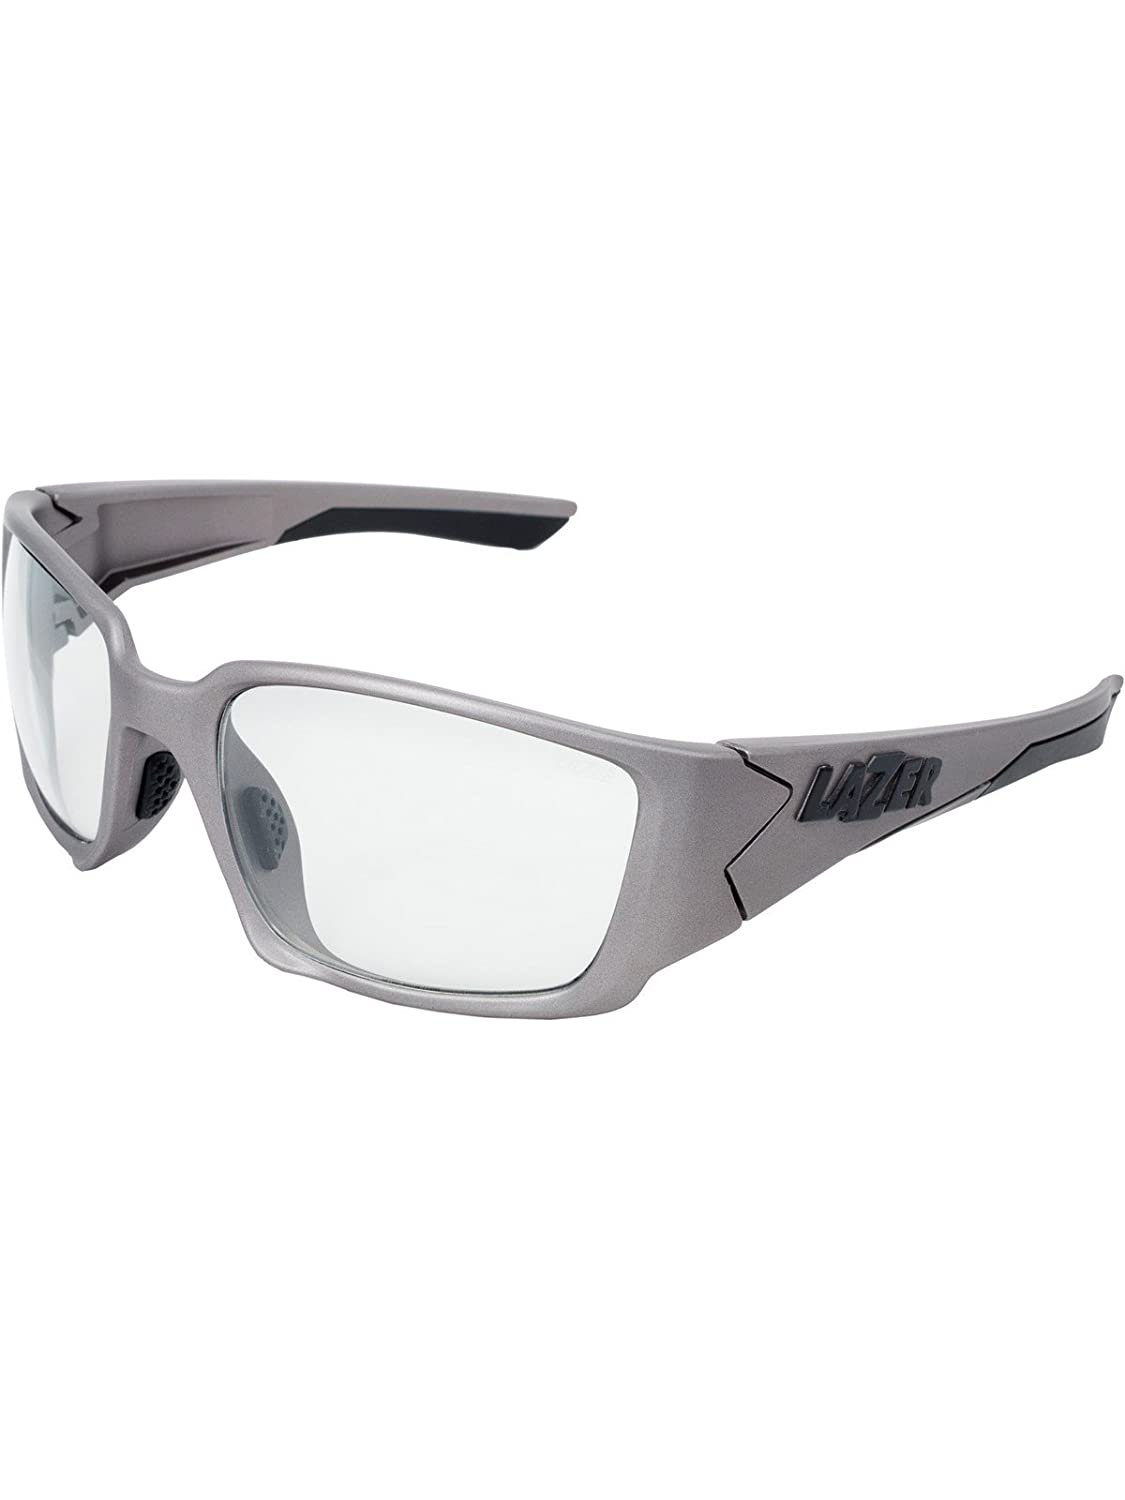 Lazer Matt Titanium-Crystal Photochromic Krypton KR1 Cycling Glasses